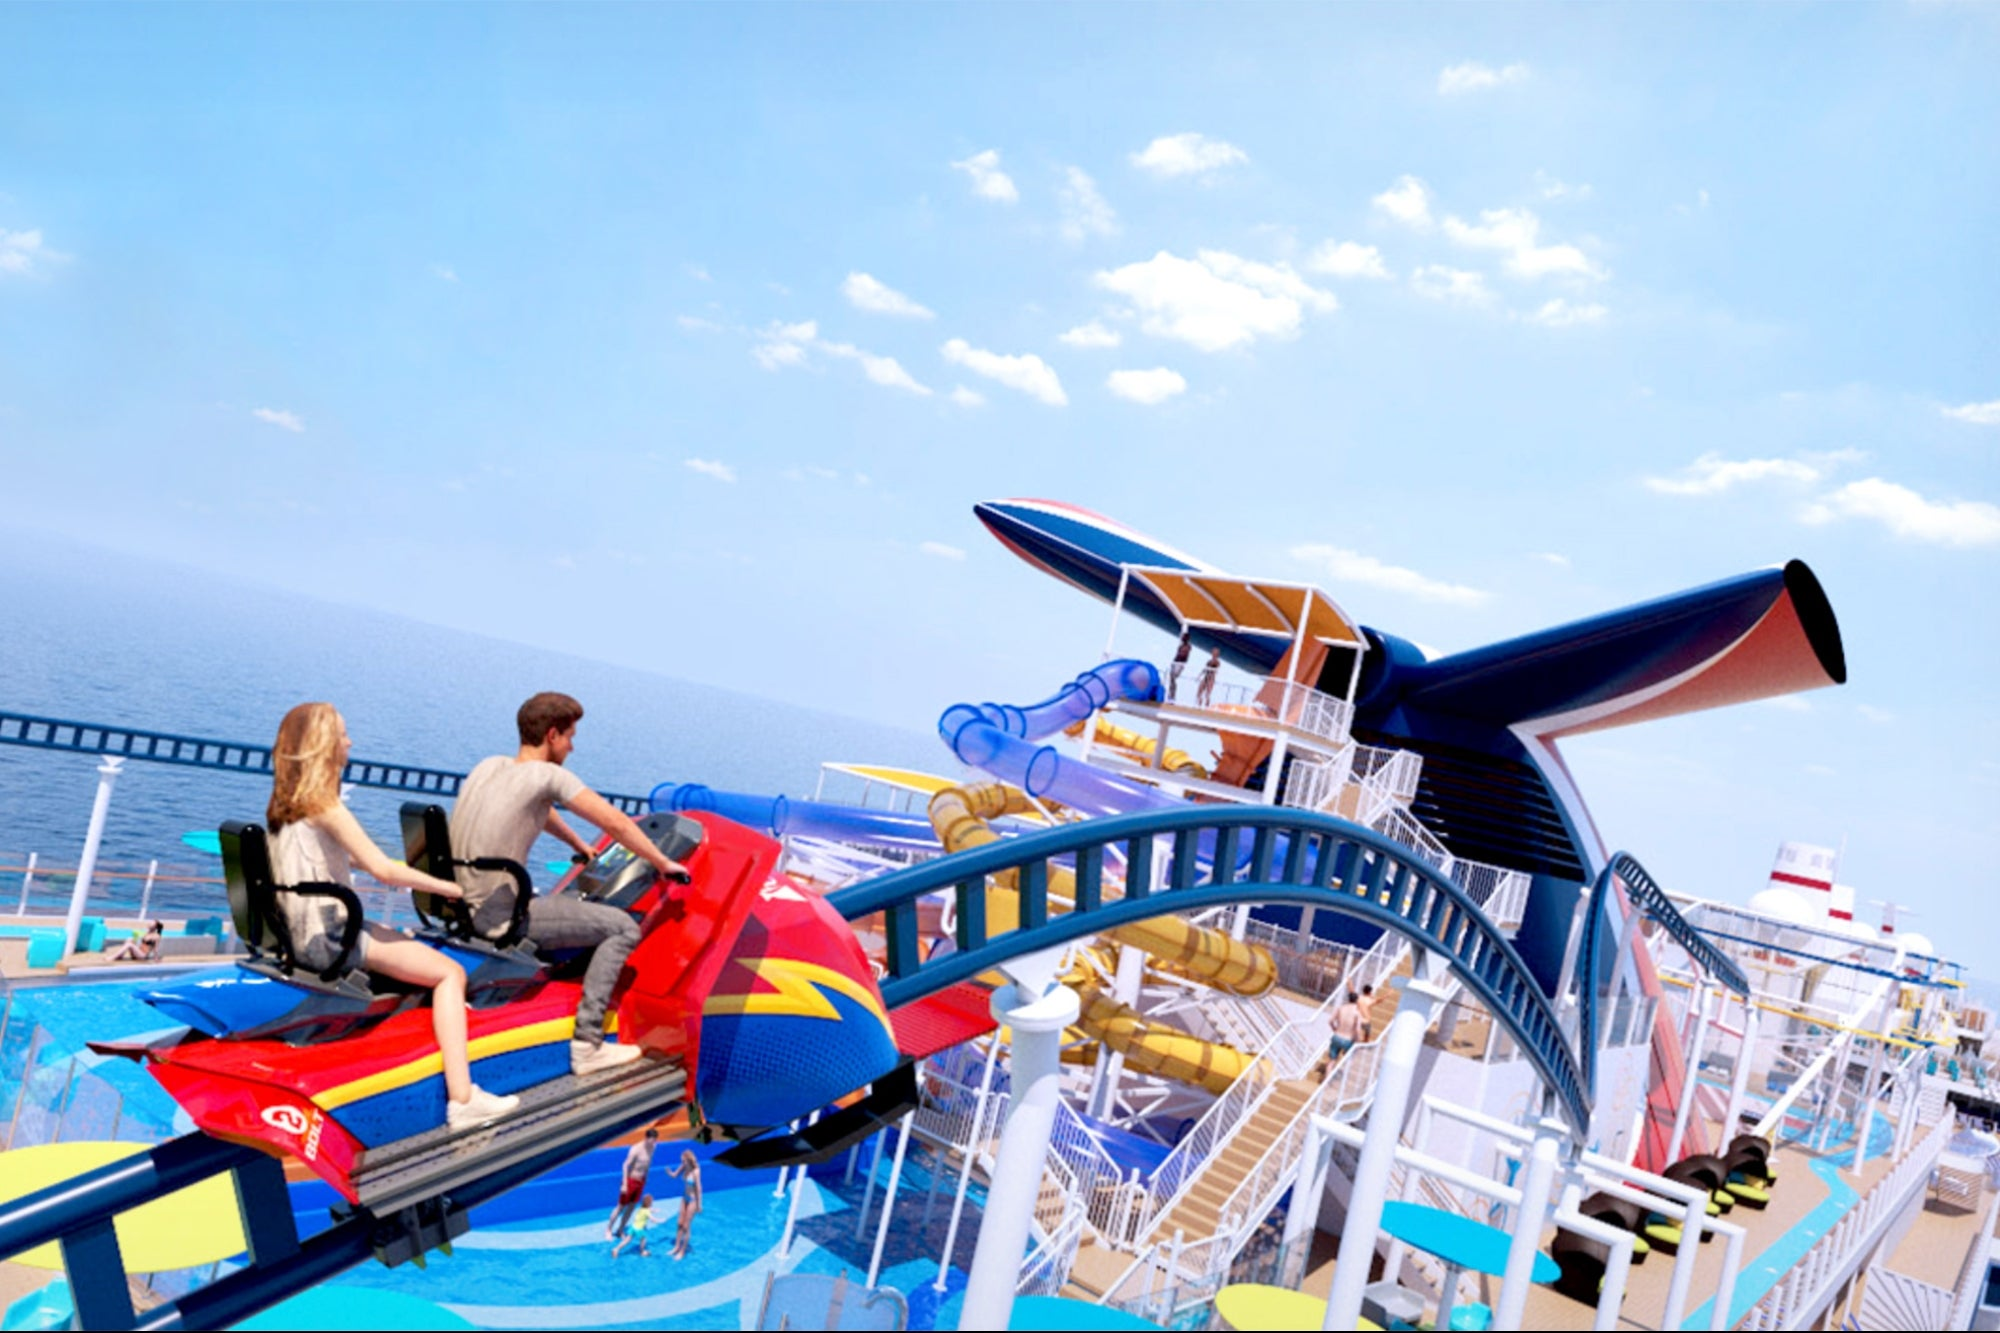 Carnival's Newest Ship, Complete with Roller Coaster, Docks at Port Canaveral